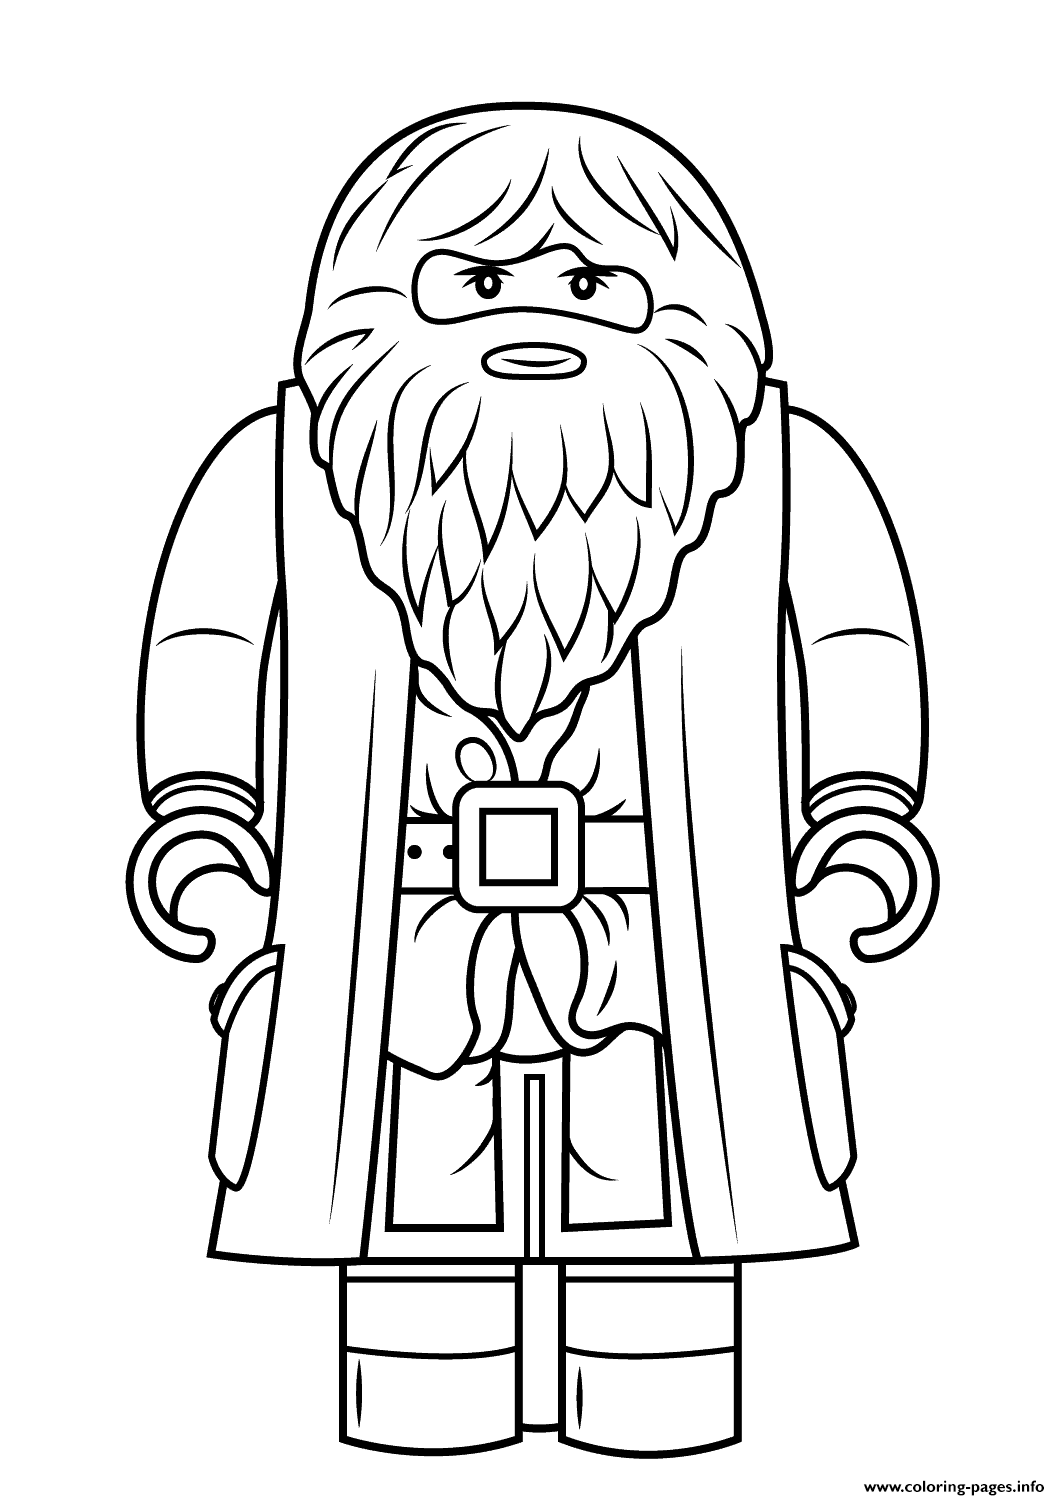 Lego Rubeus Hagrid Minifigure Harry Potter Coloring Pages Printable